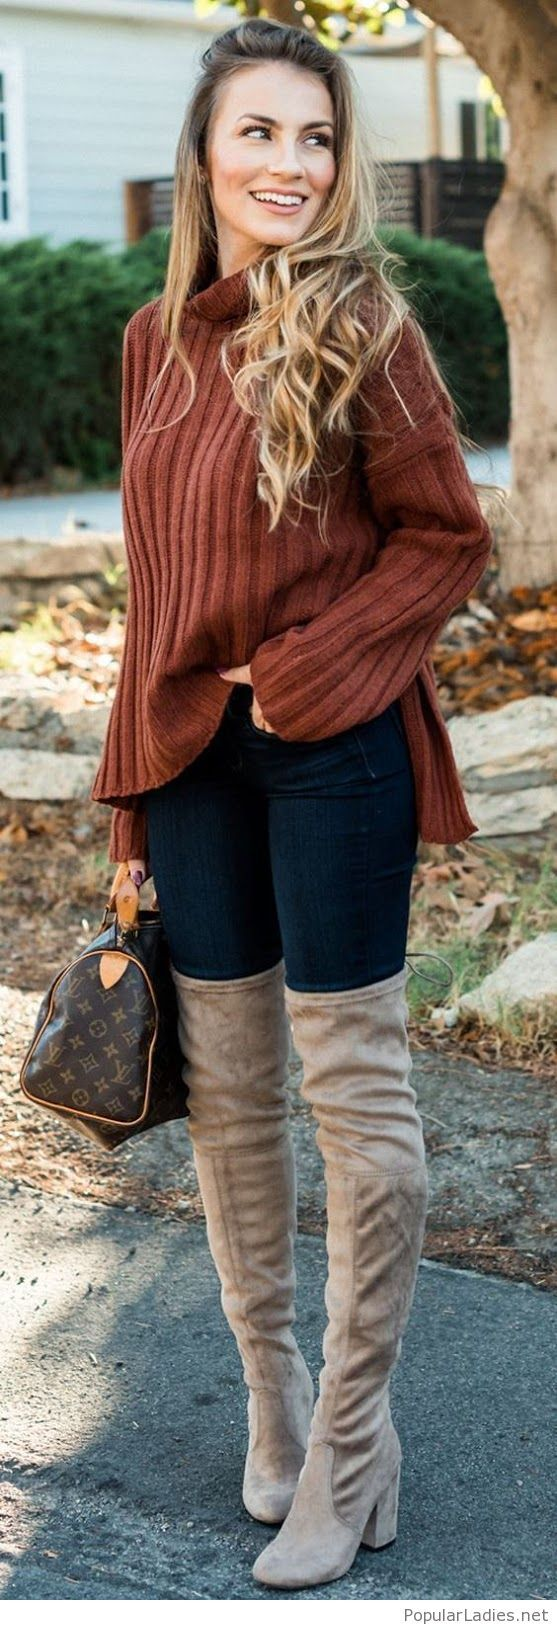 Nude boots, jeans and brown sweater